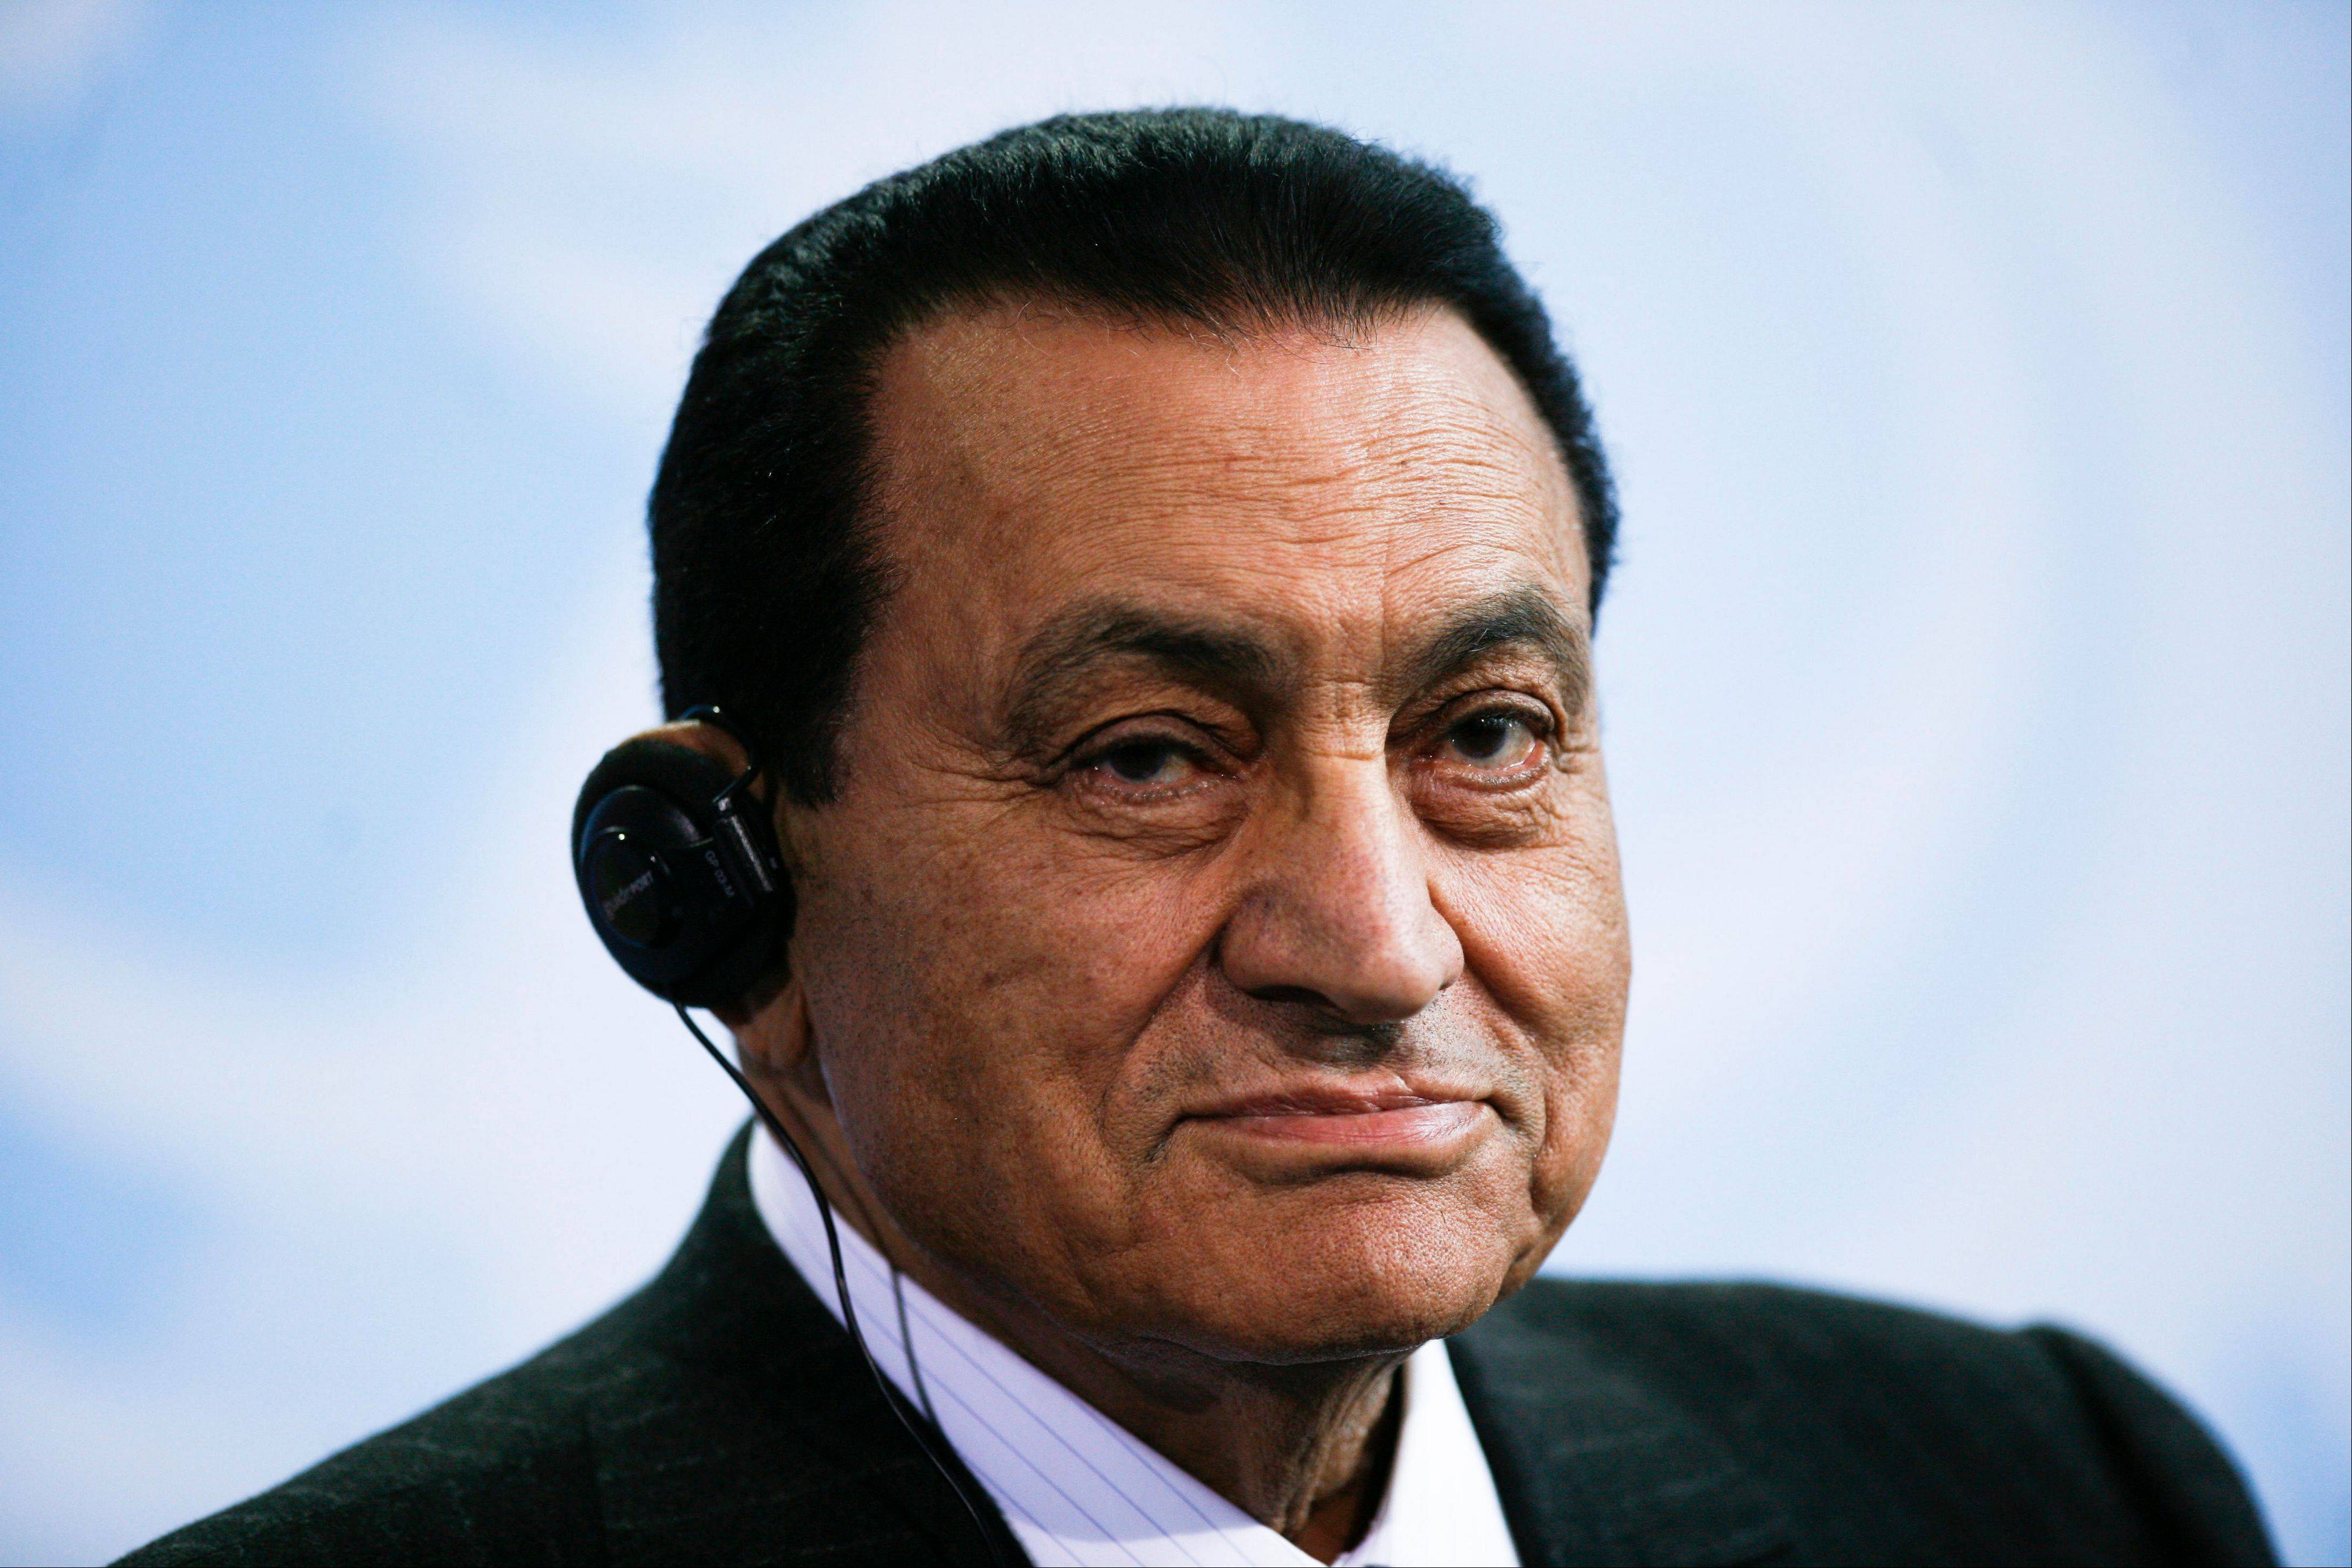 An Egyptian court has ordered the release of ex-President Hosni Mubarak, but it's not immediately clear whether the prosecutors will appeal the order.